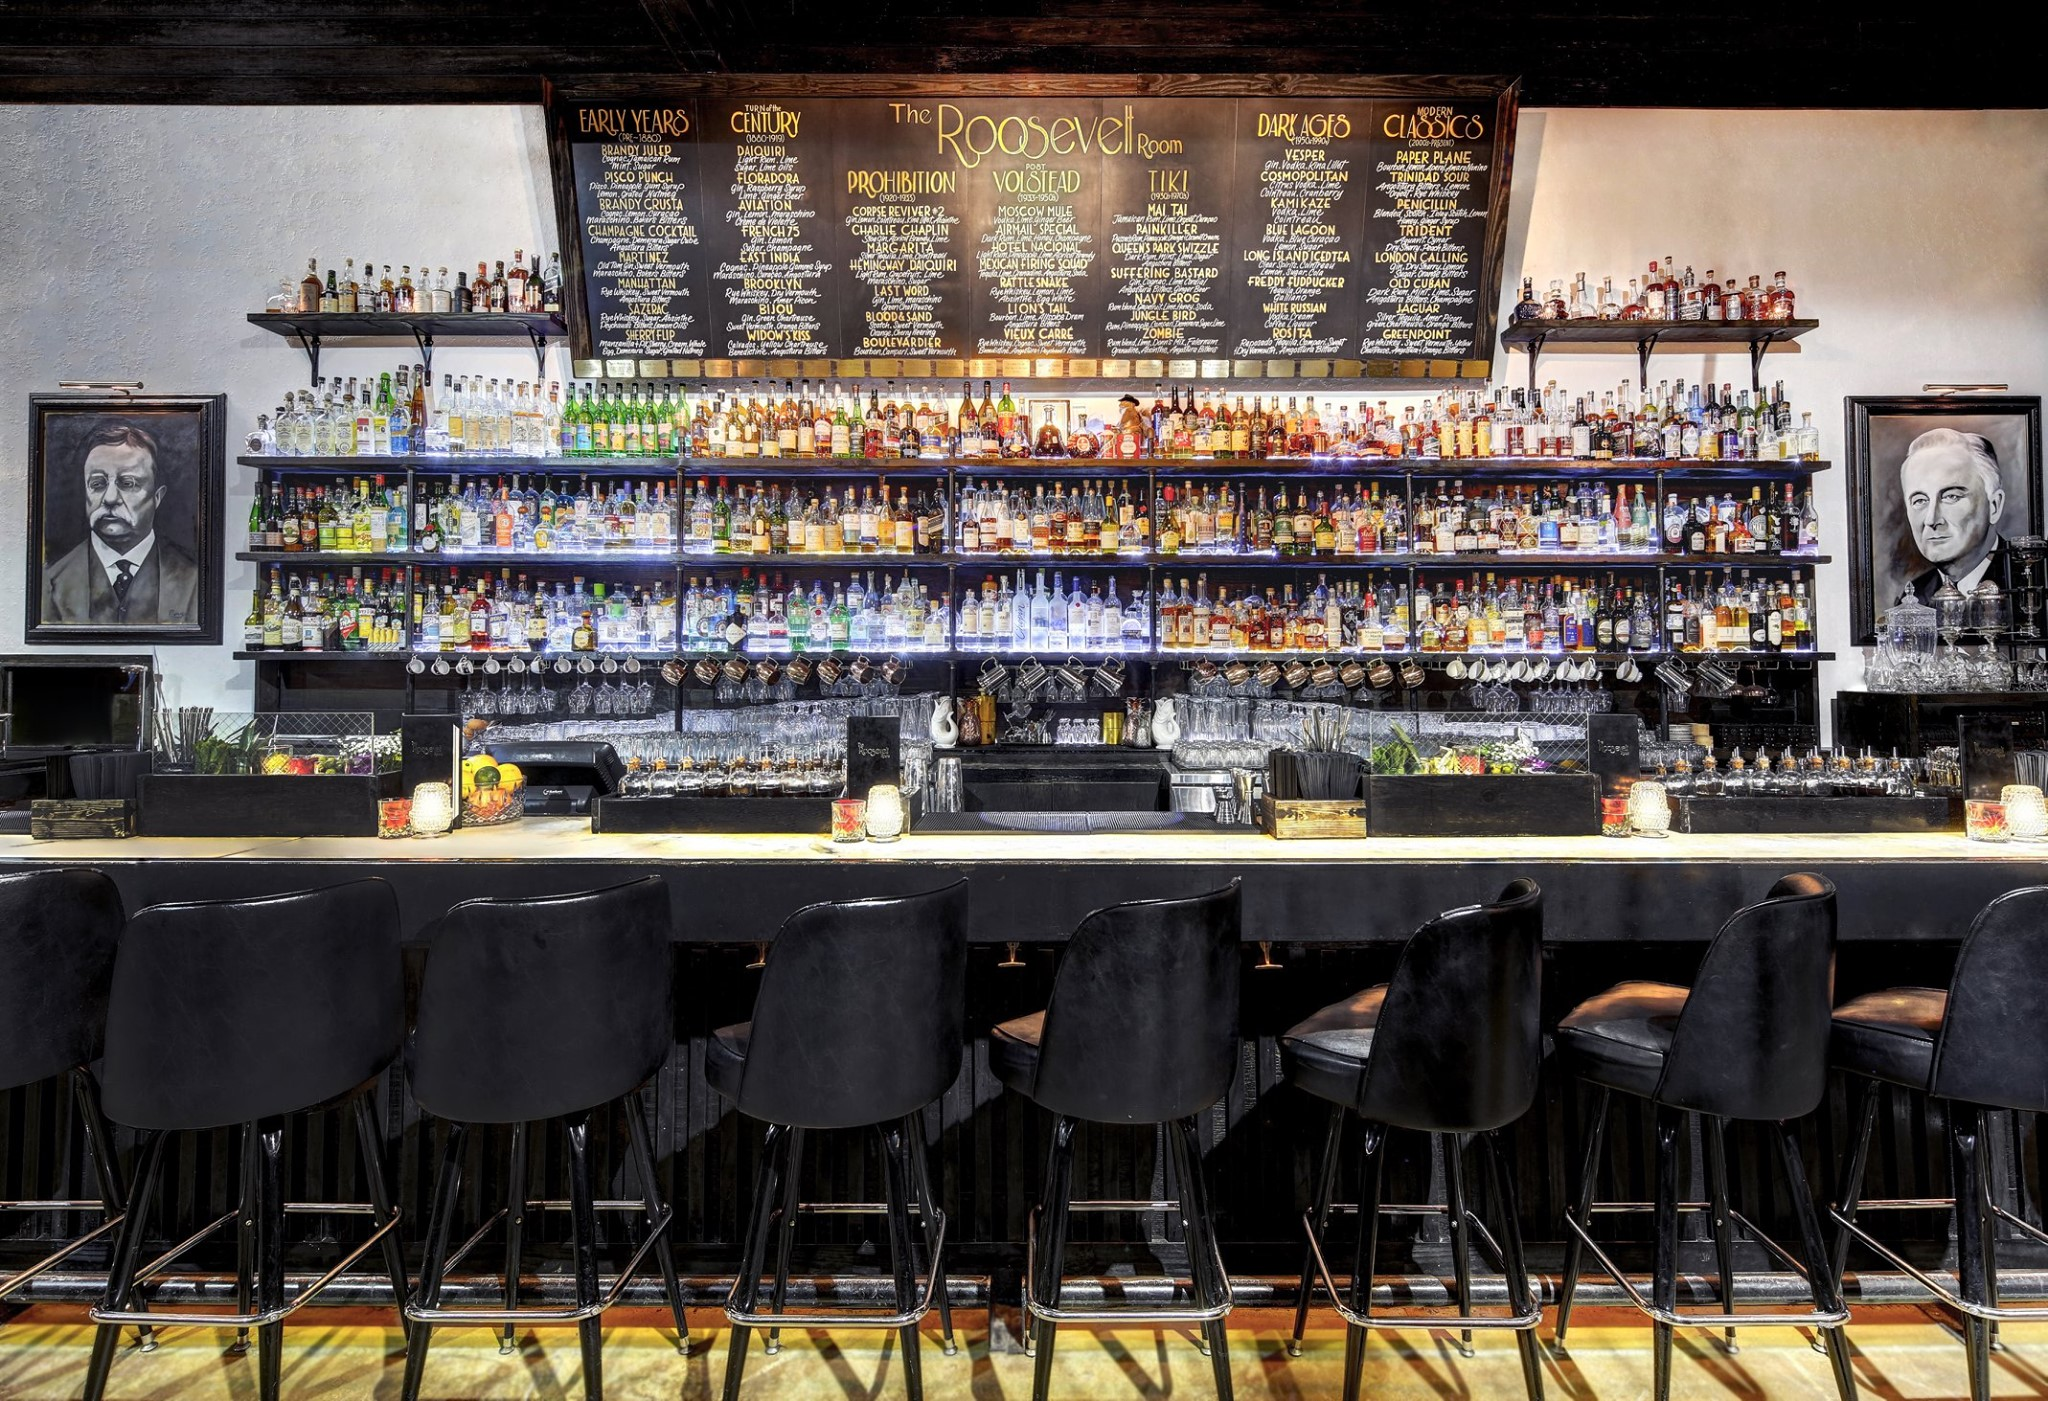 The bar at the Roosevelt Room